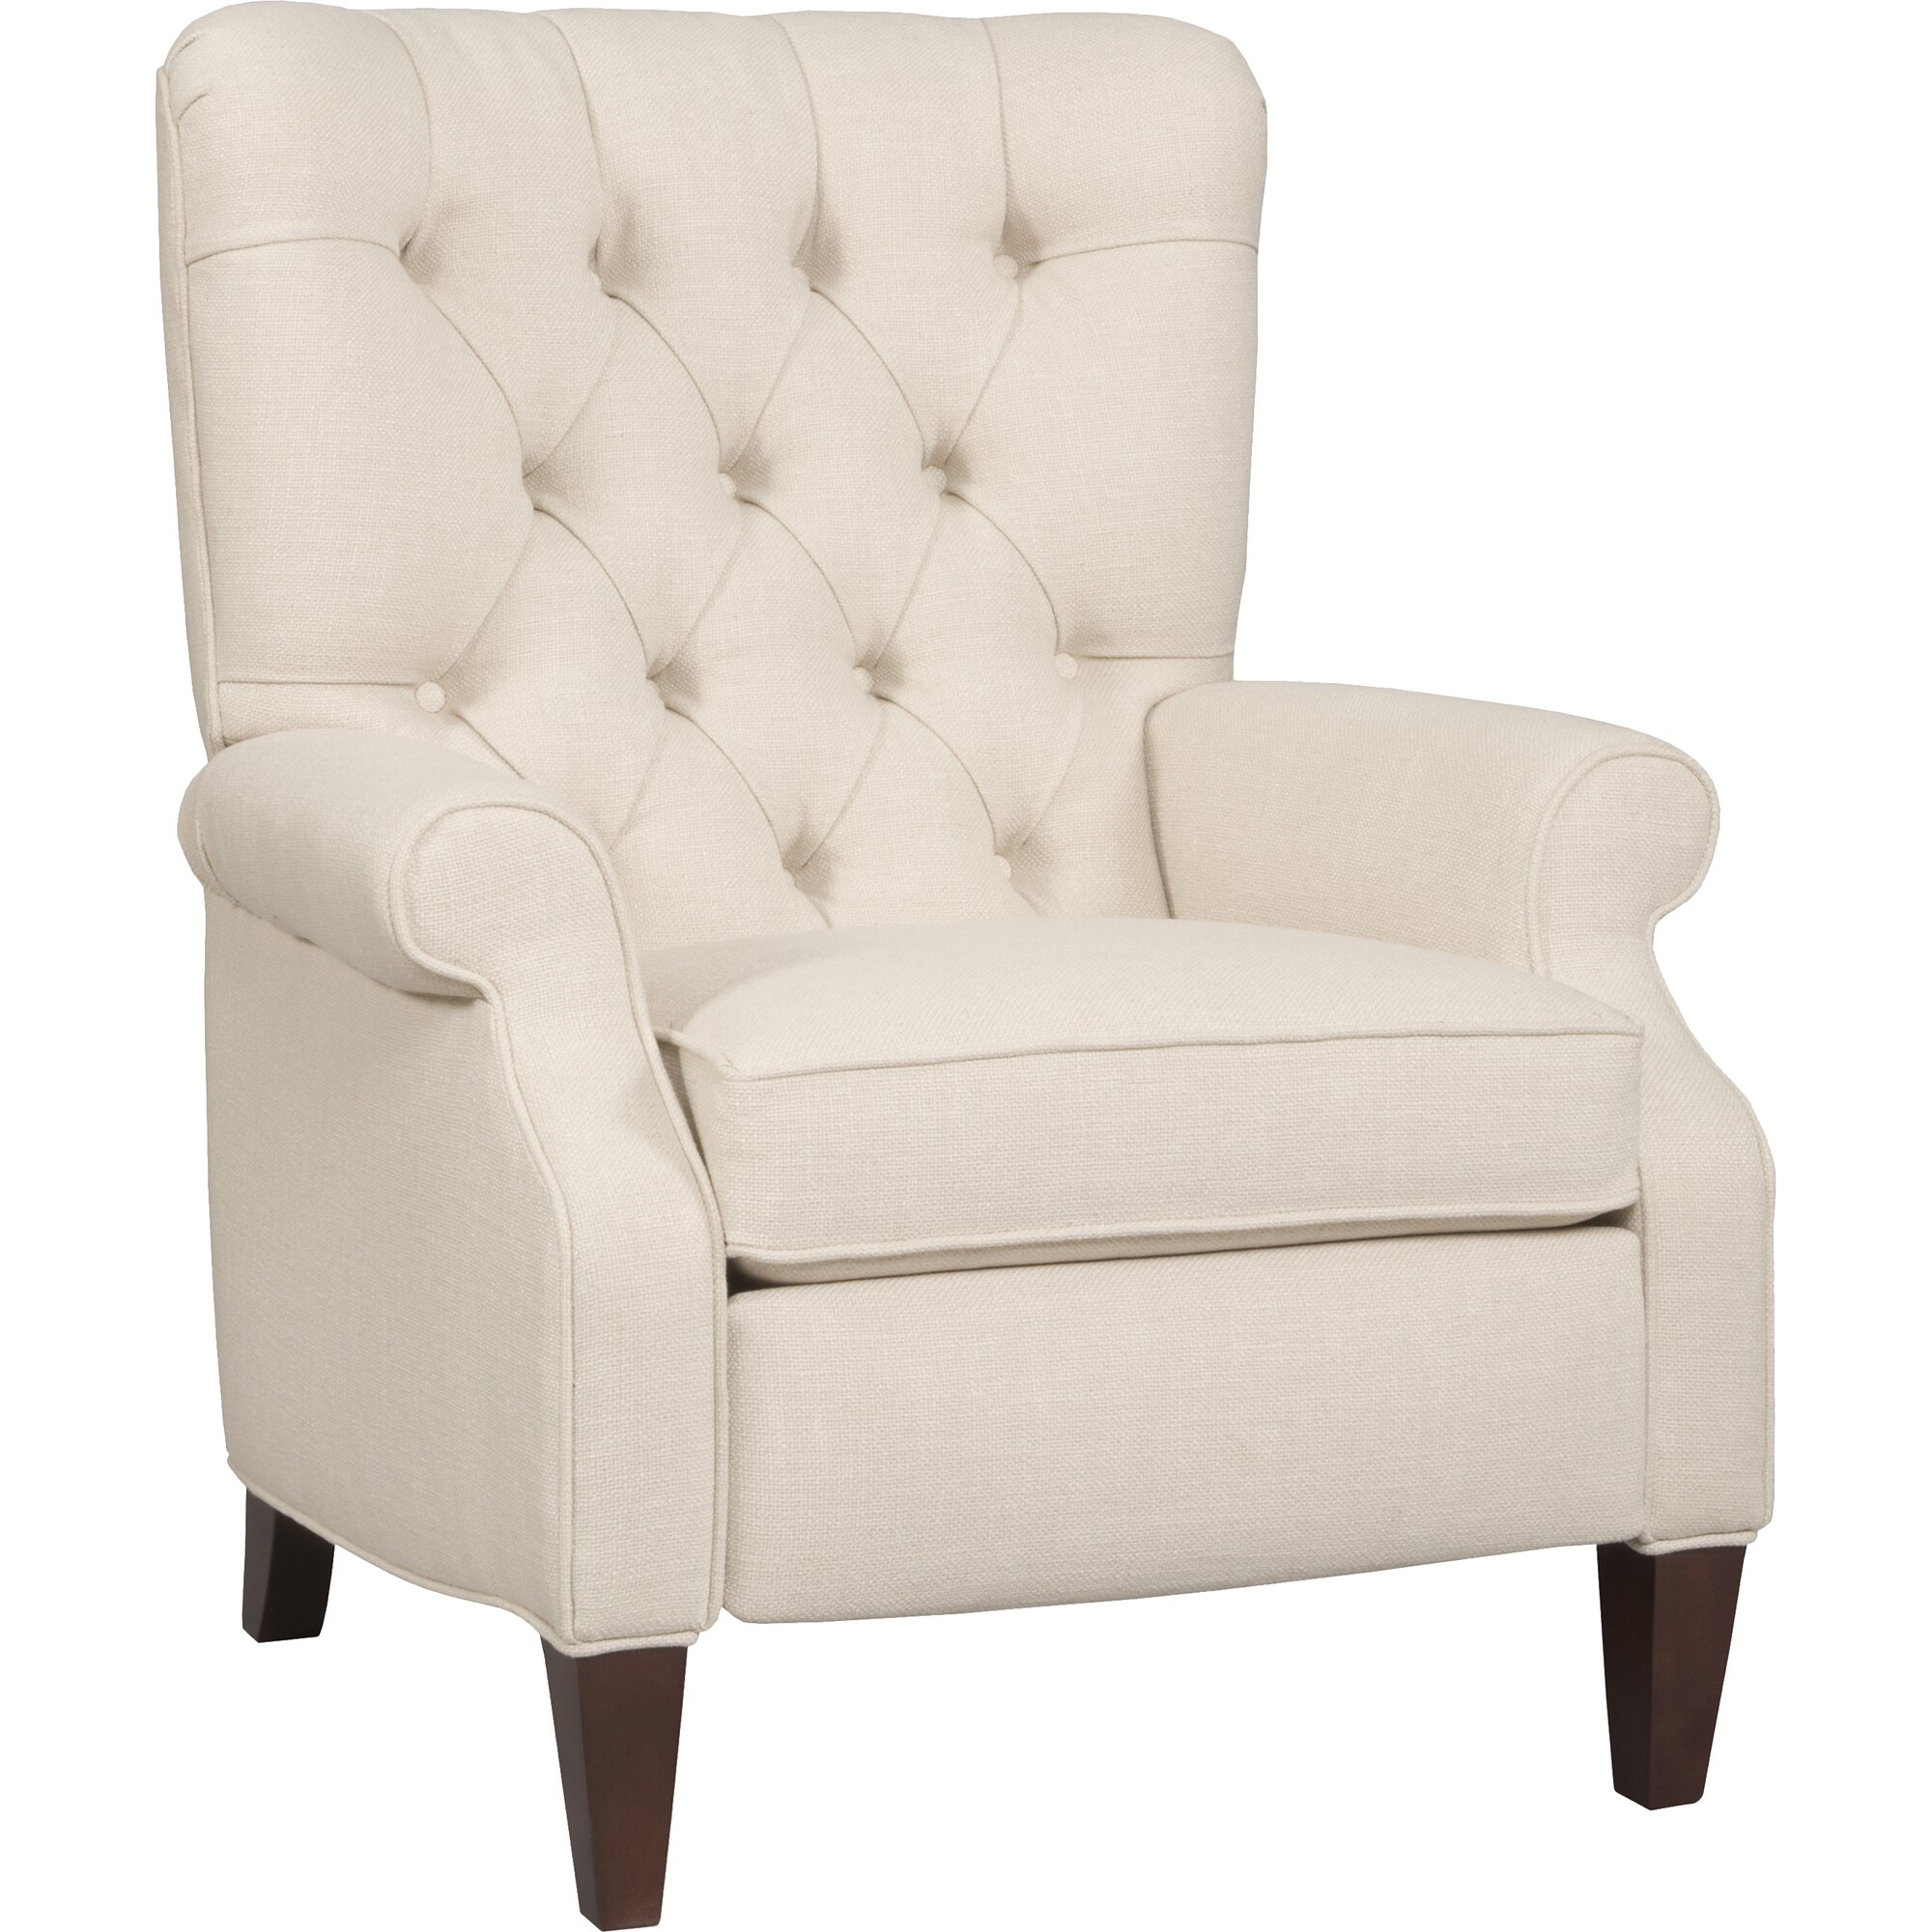 Club Chair Recliner - Annick recliner